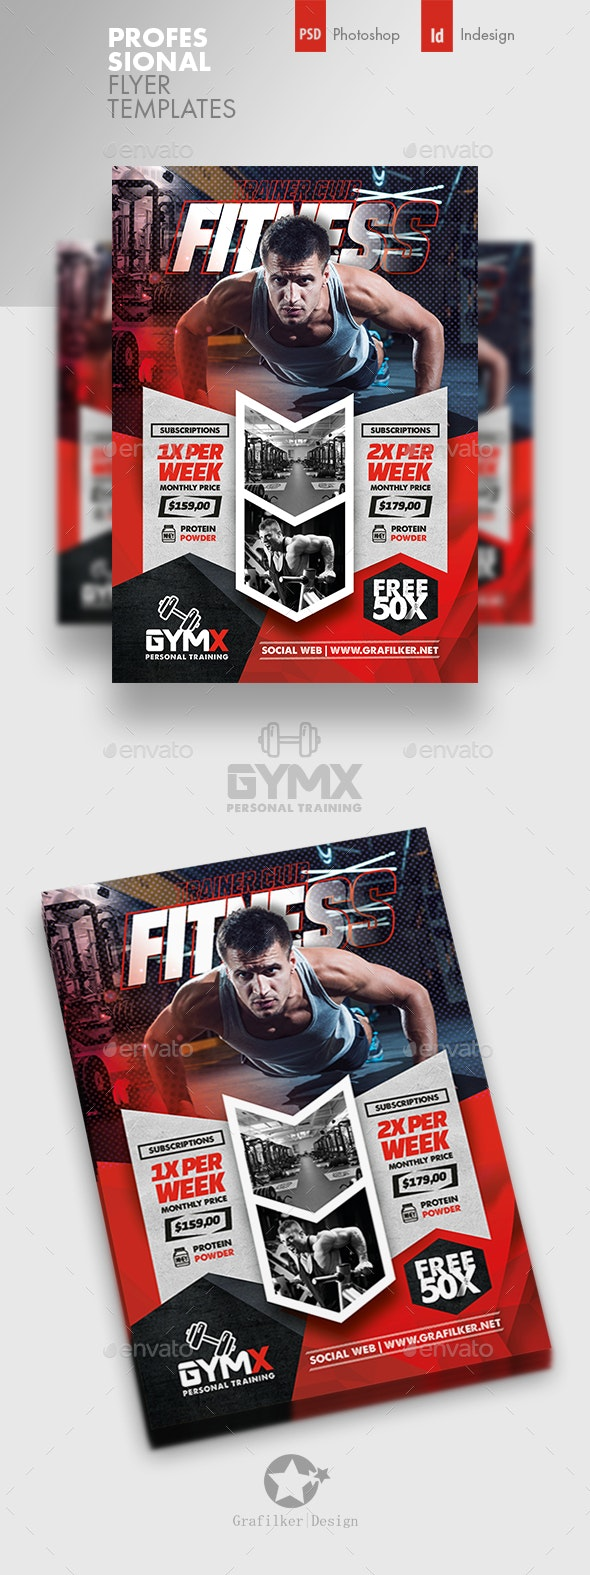 Fitness Trainer Flyer Templates - Corporate Flyers